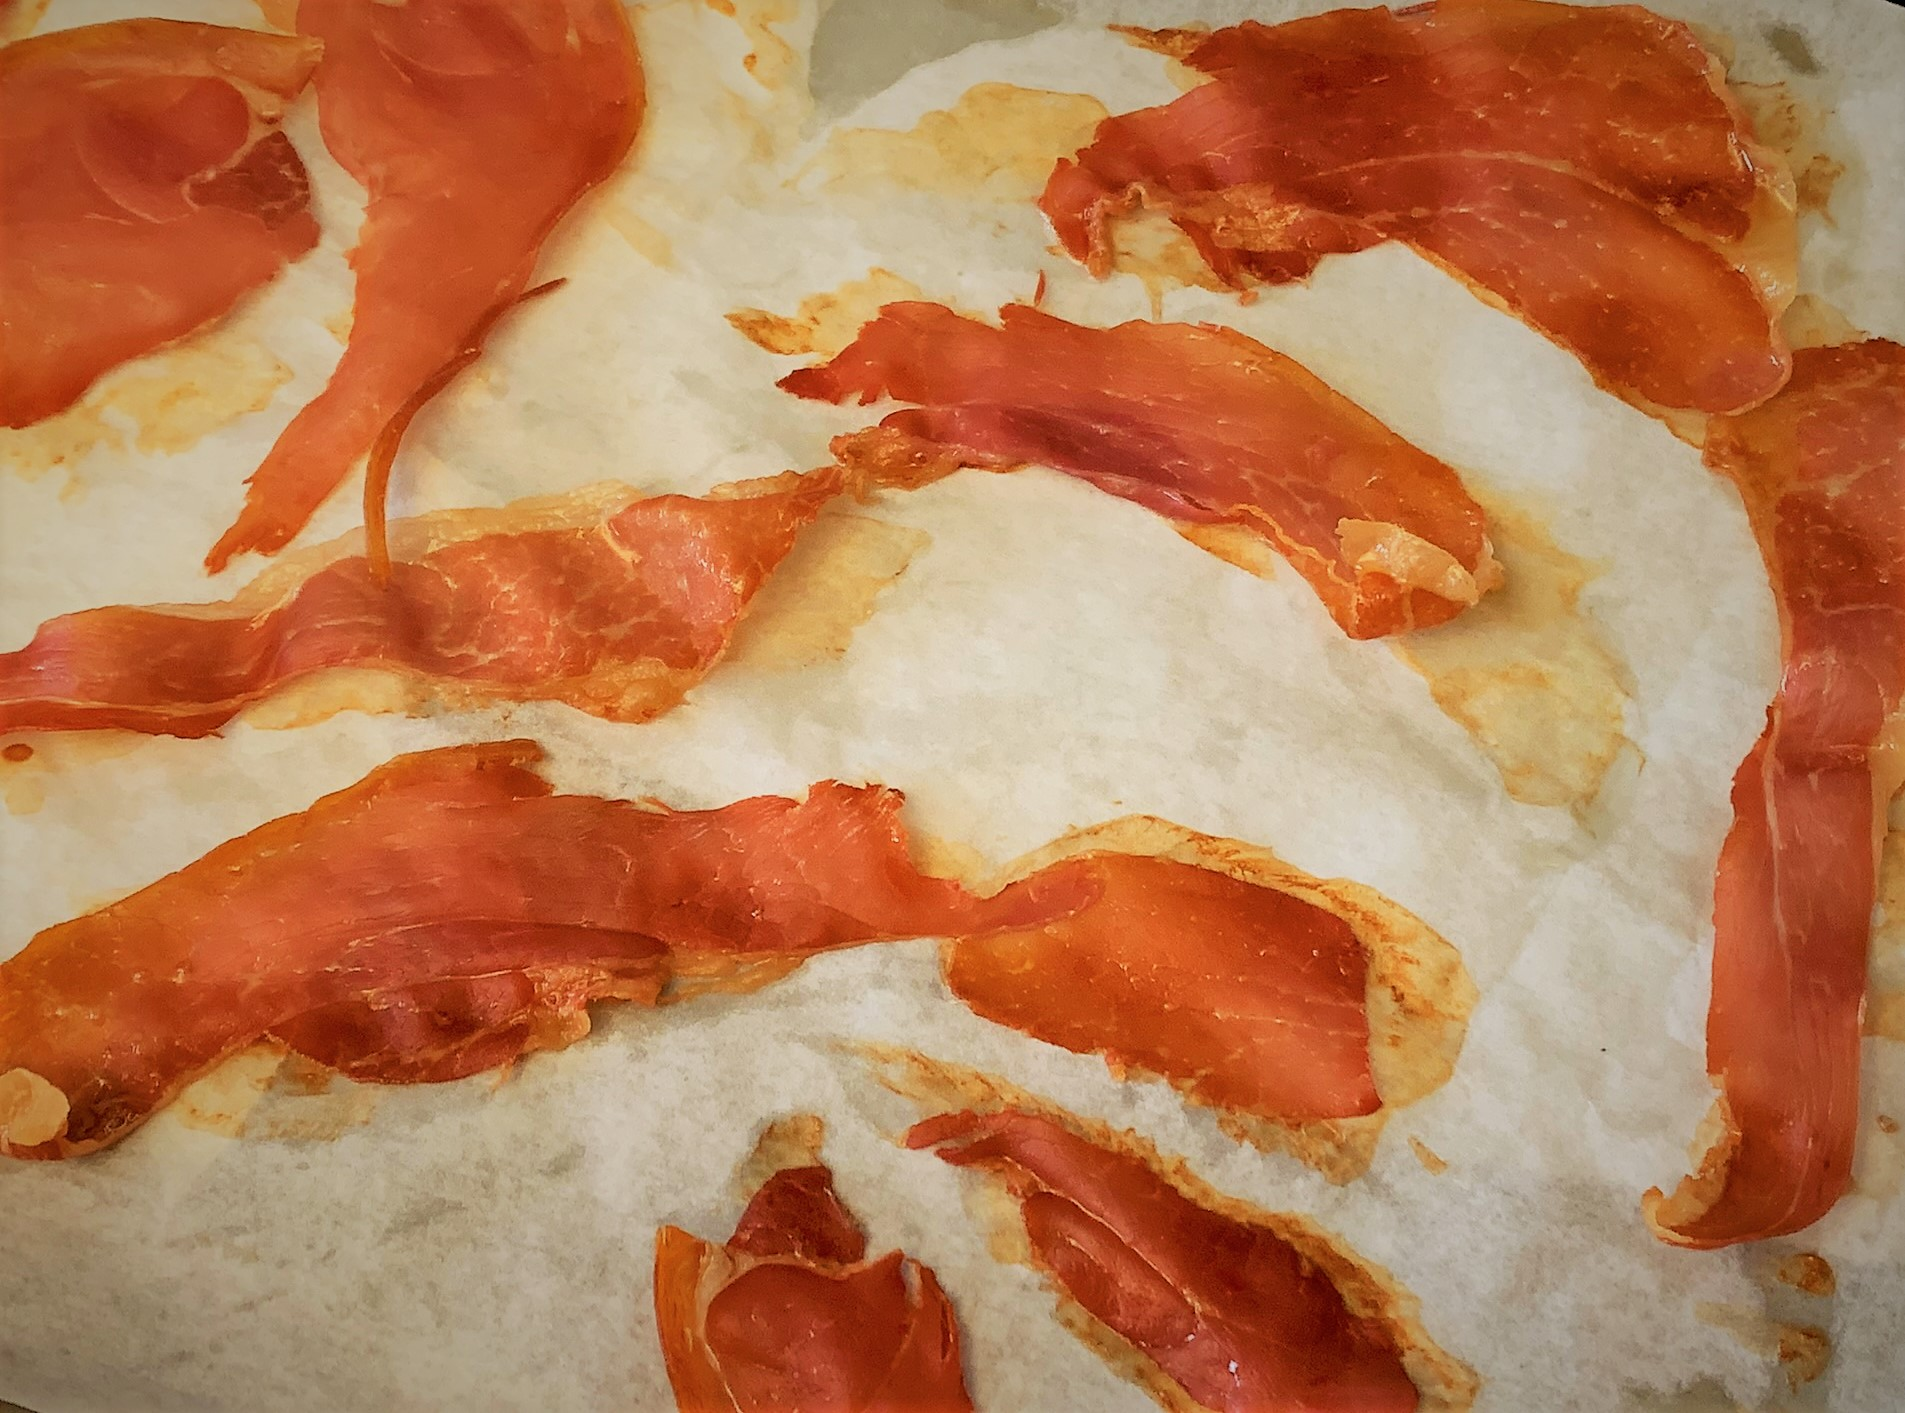 The Crispy Prosciutto for our Pancetta Seared Scallops with Crispy Prosciutto & Minted Pea Puree